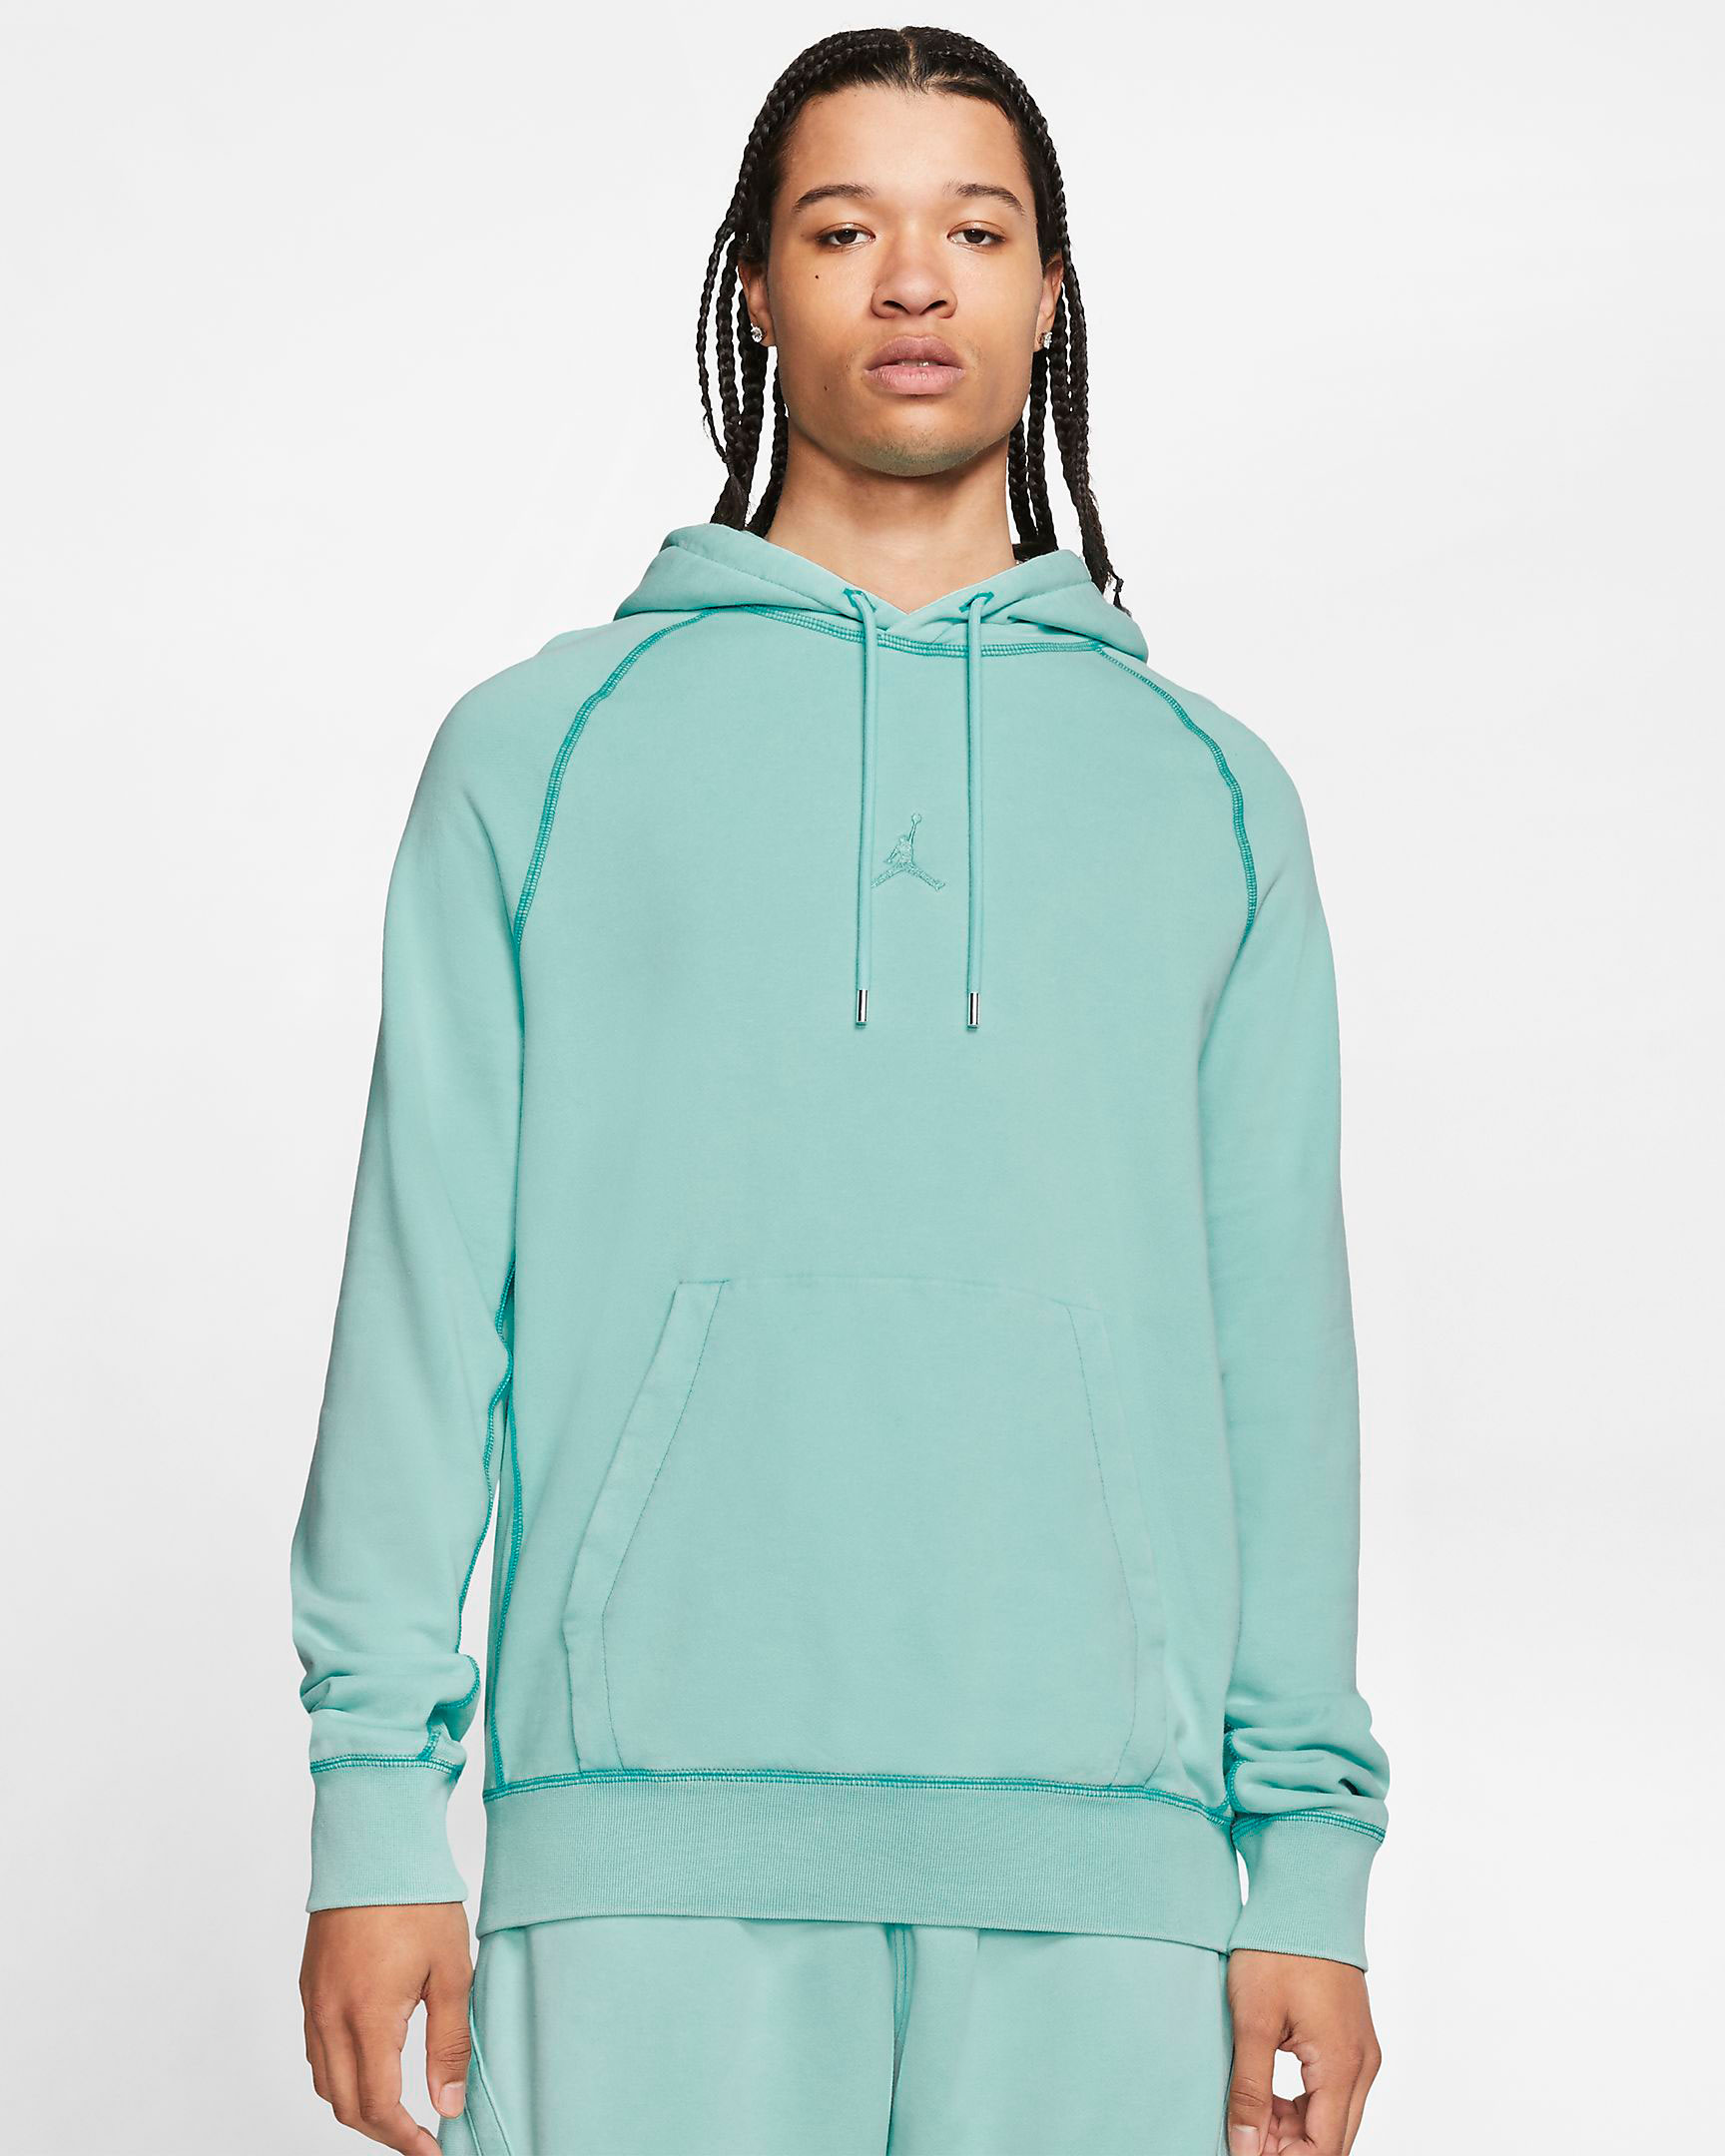 jordan-wings-washed-aqua-hoodie